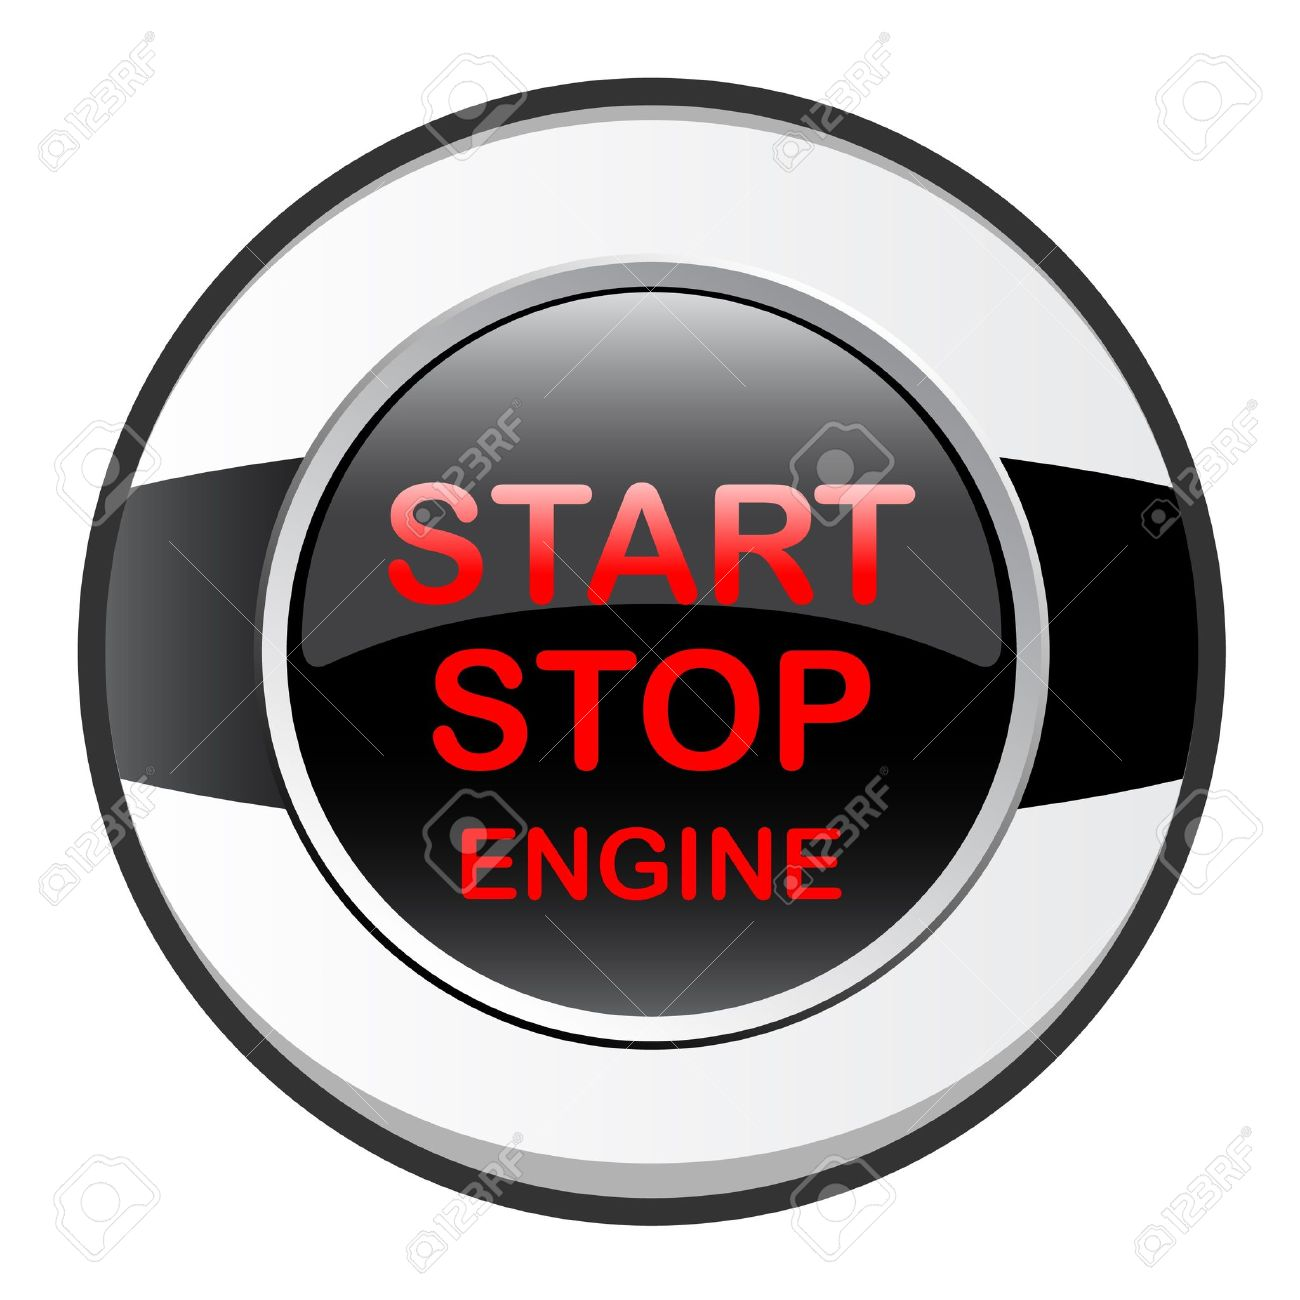 Stop Start Engine Royalty Free Cliparts, Vectors, And Stock.